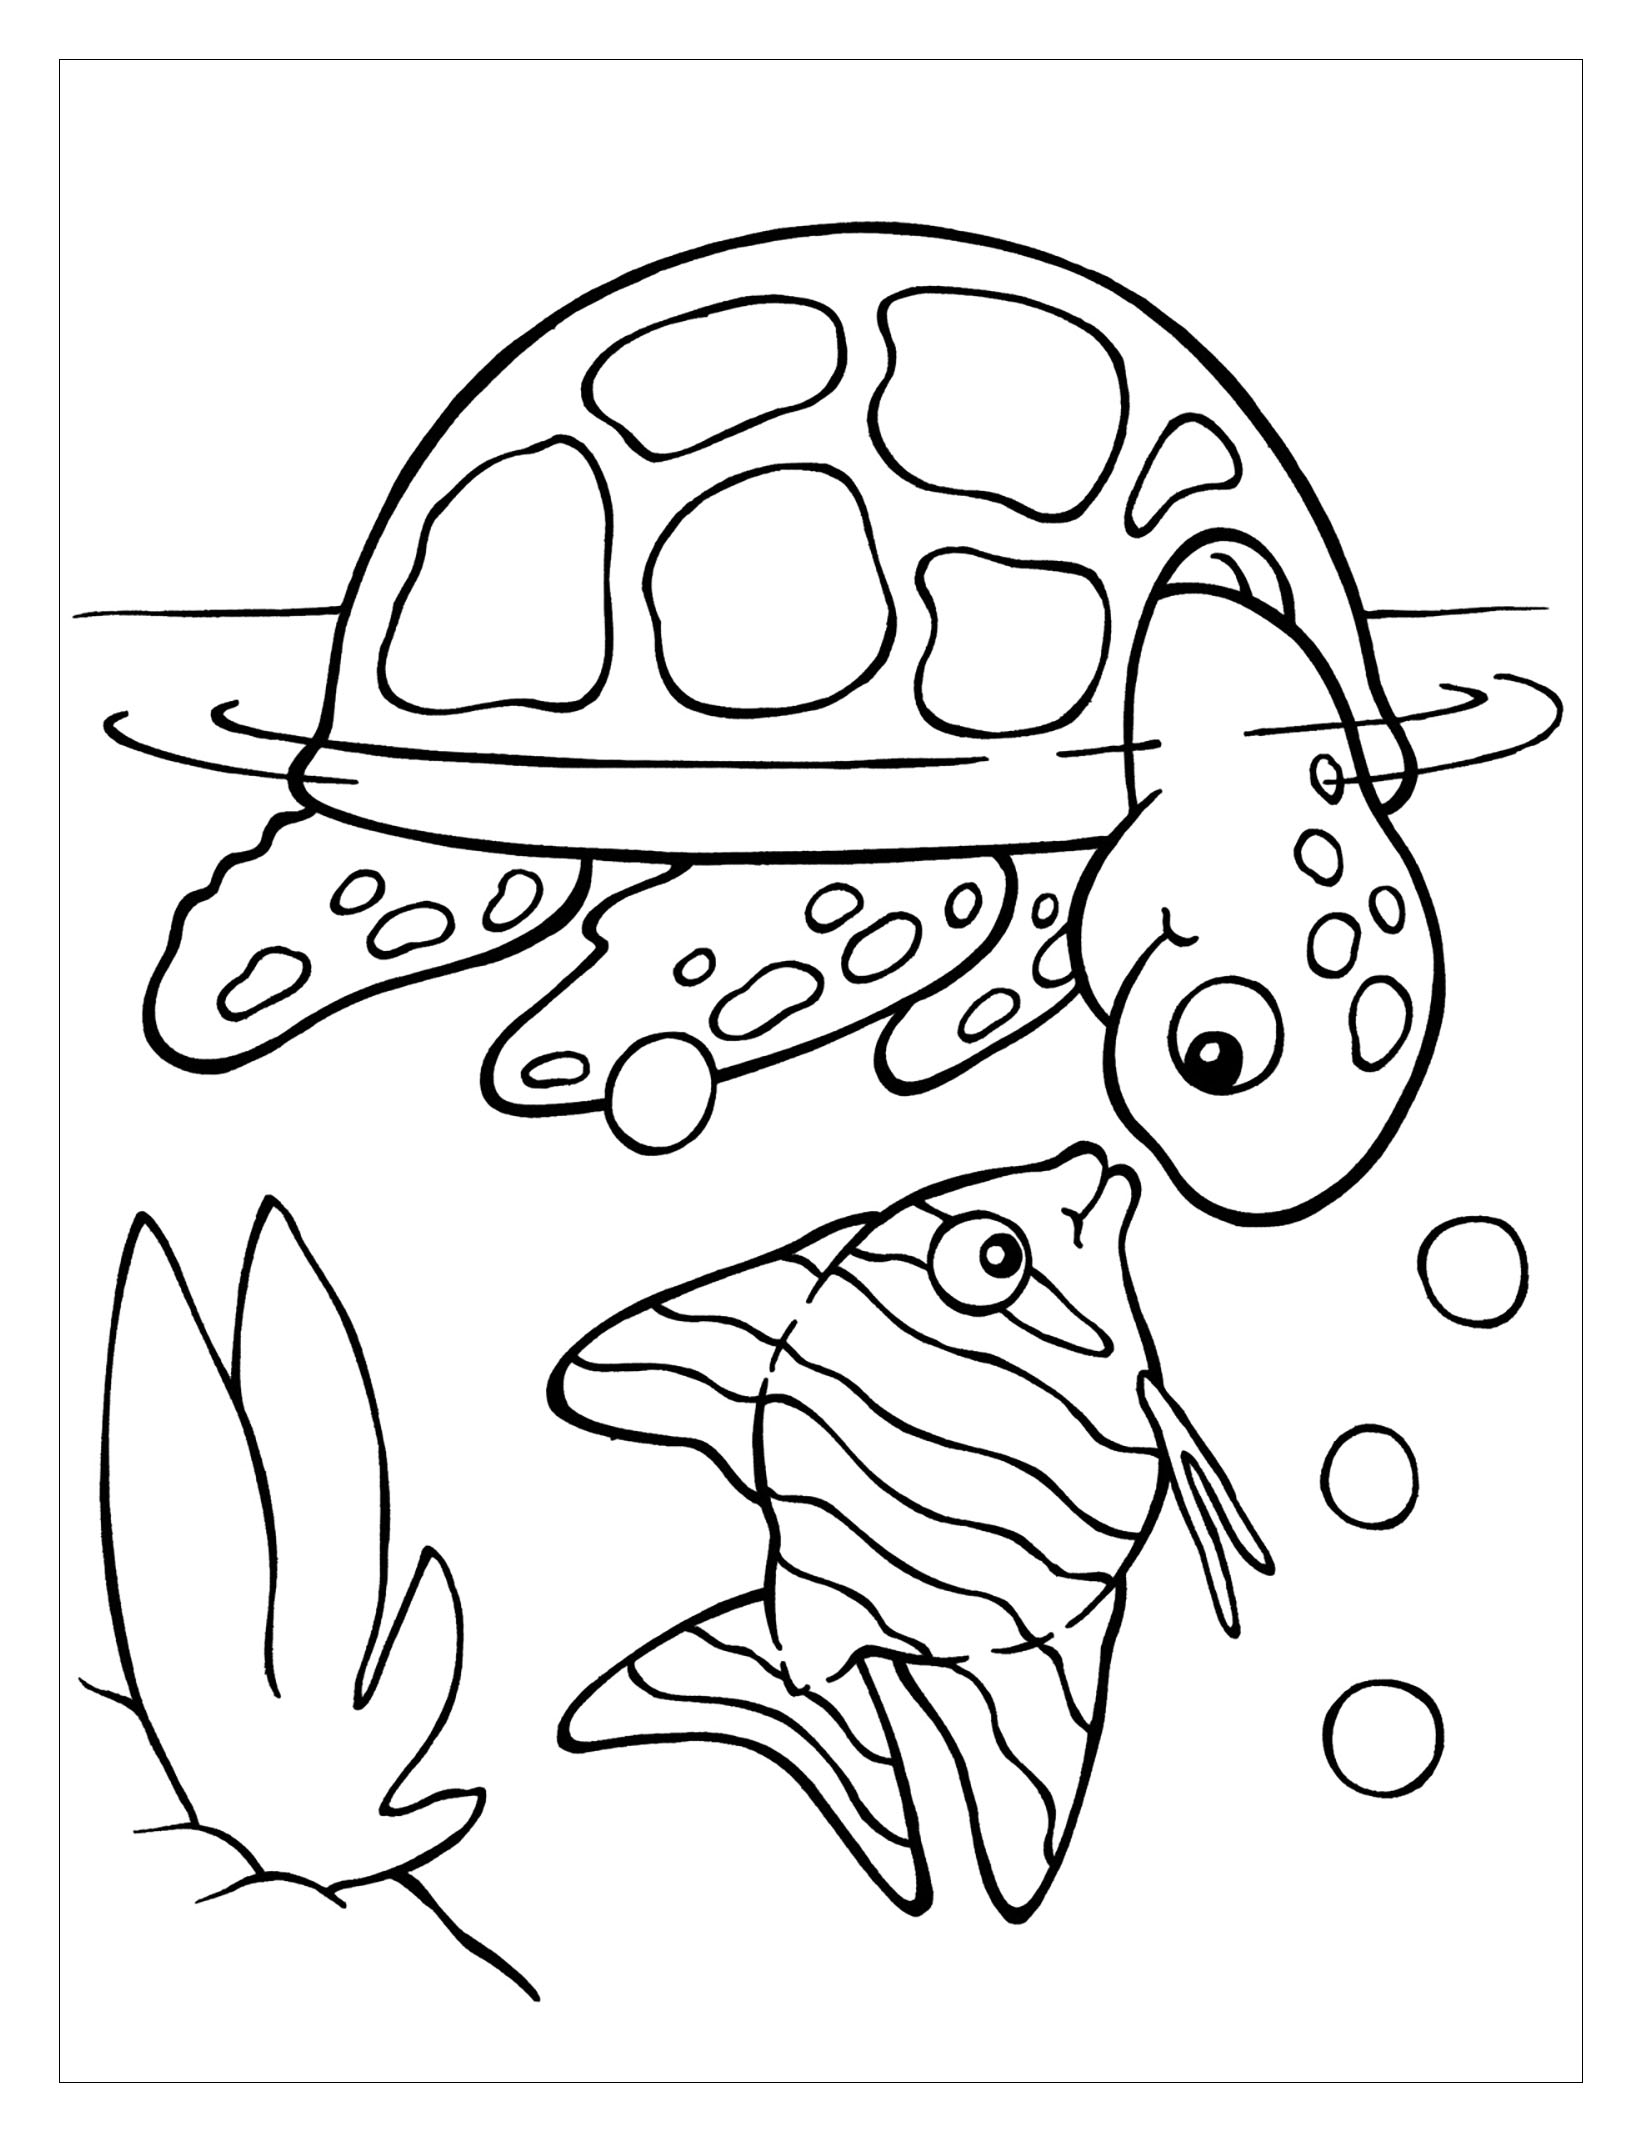 turtle coloring pictures to print turtles to download for free turtles kids coloring pages coloring turtle to print pictures